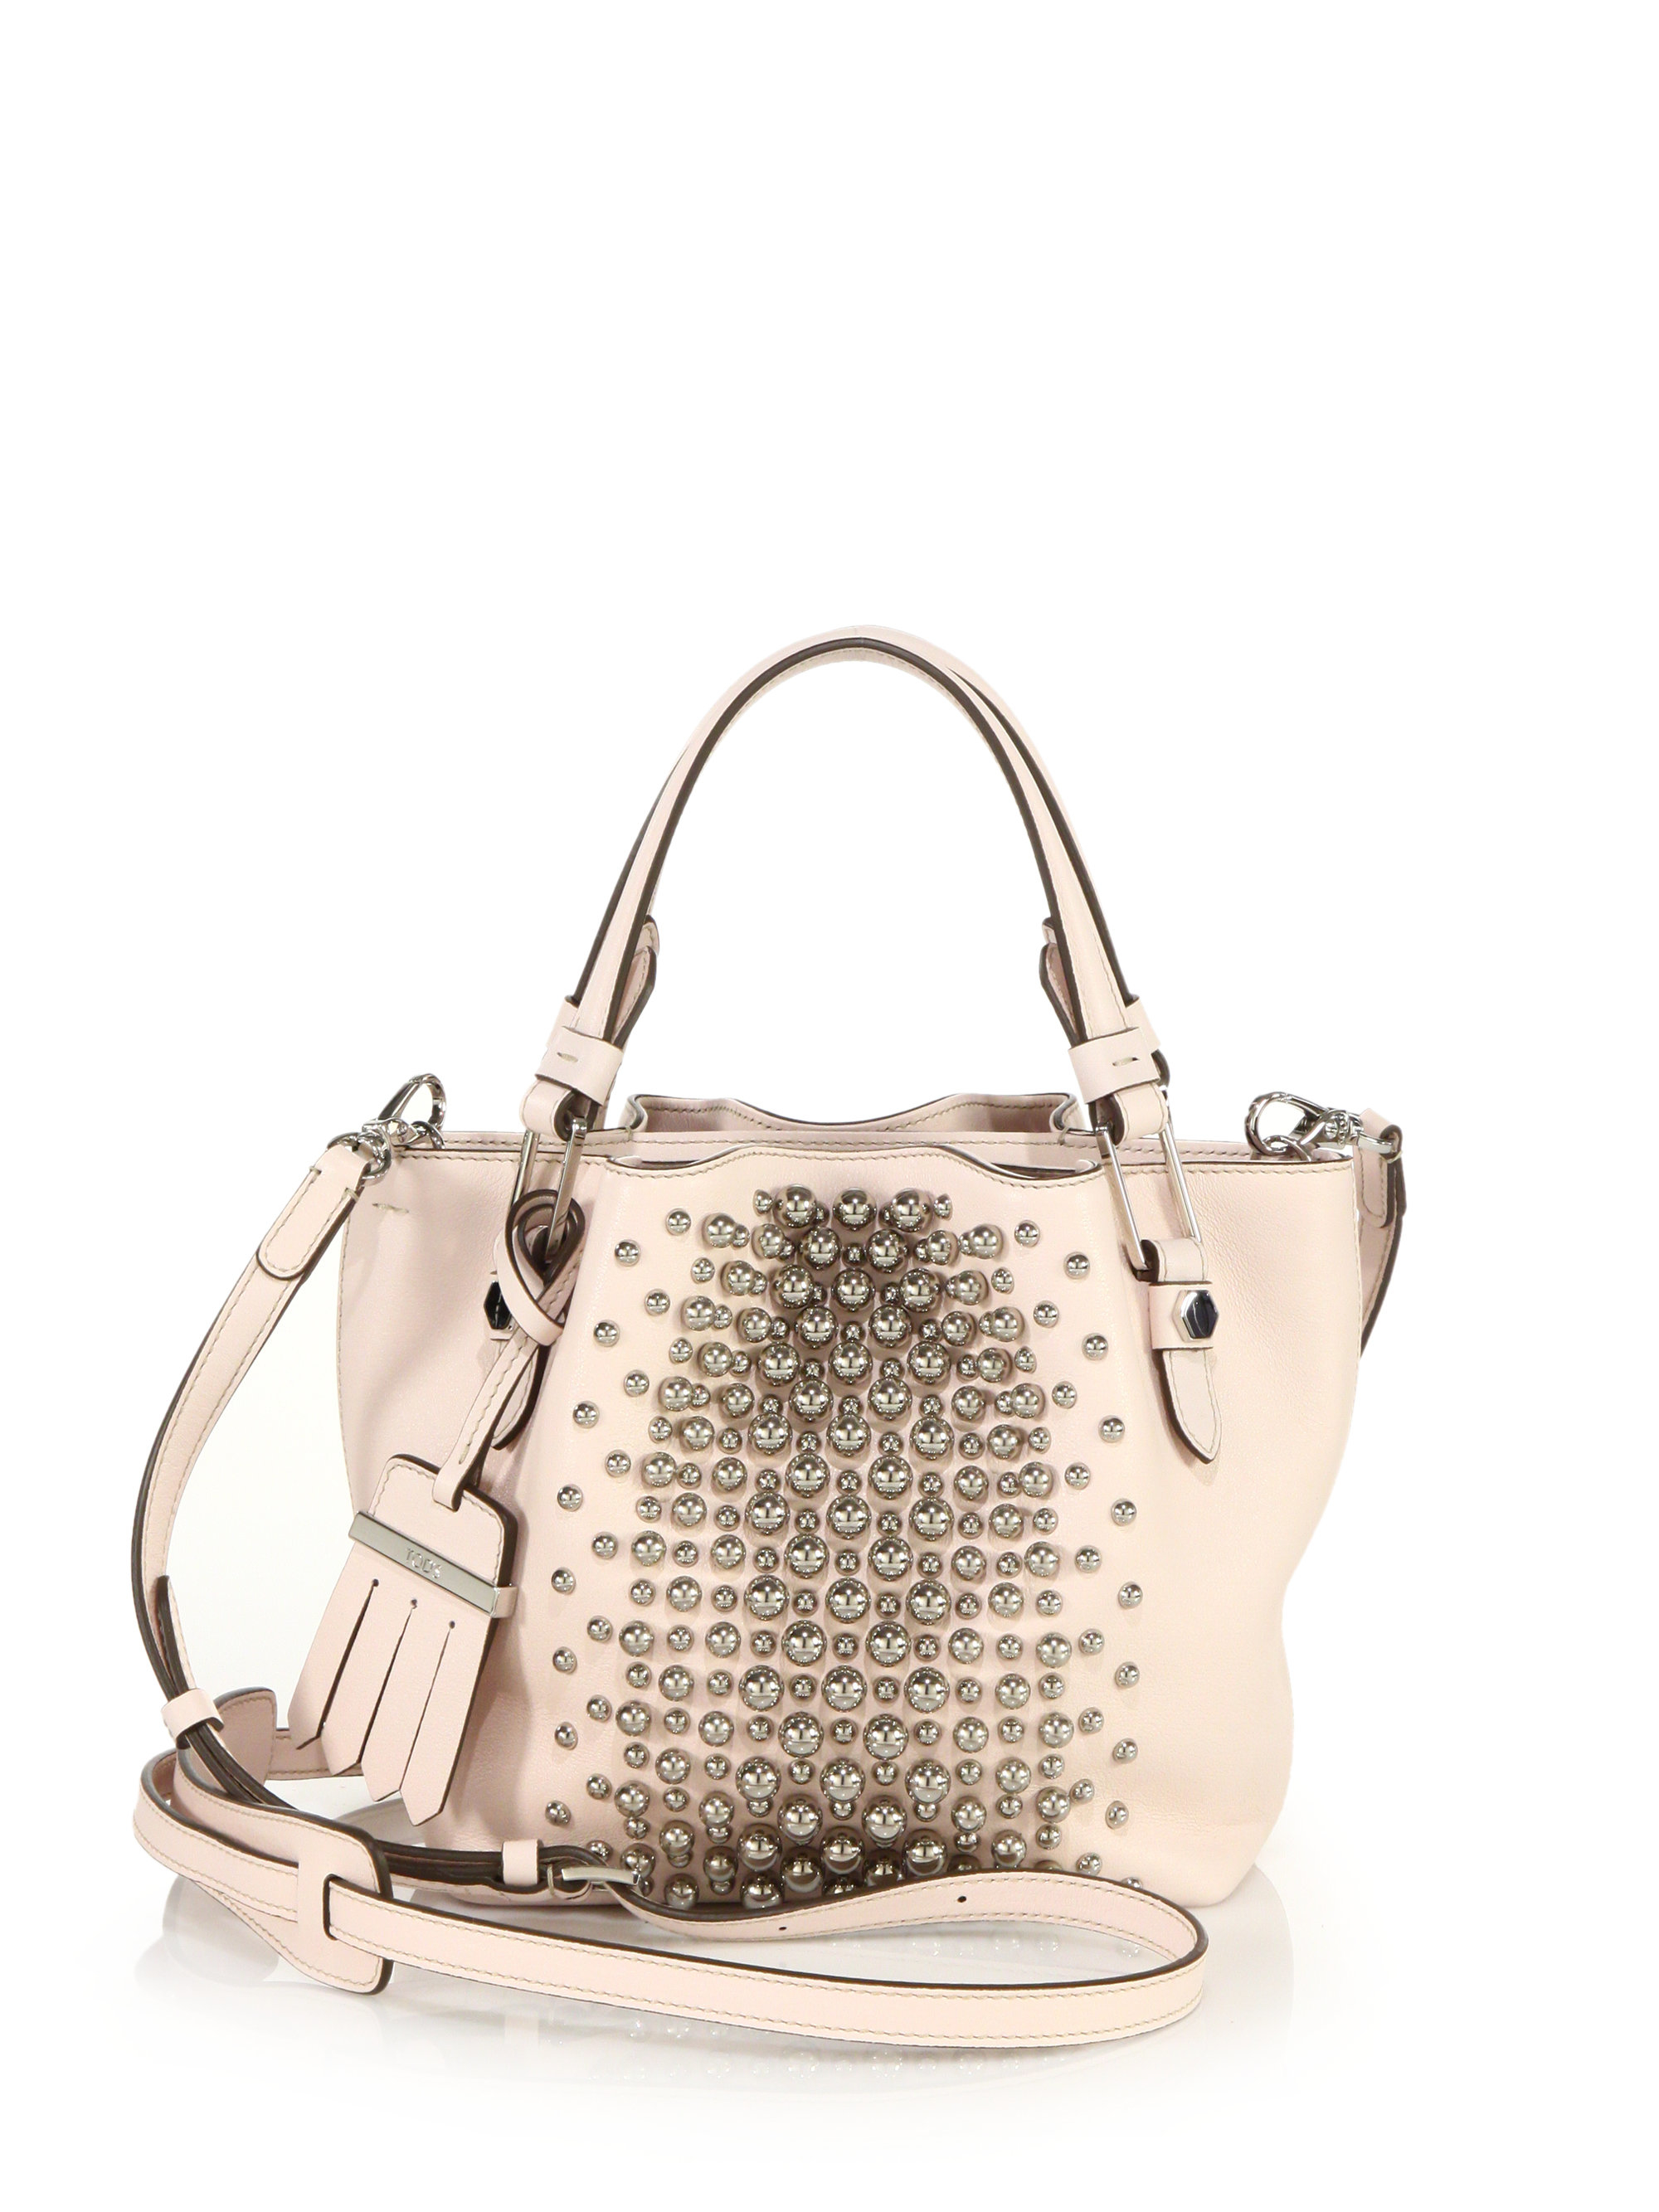 e84da09864 Tod's Flower Micro Studded Leather Tote in Pink - Lyst